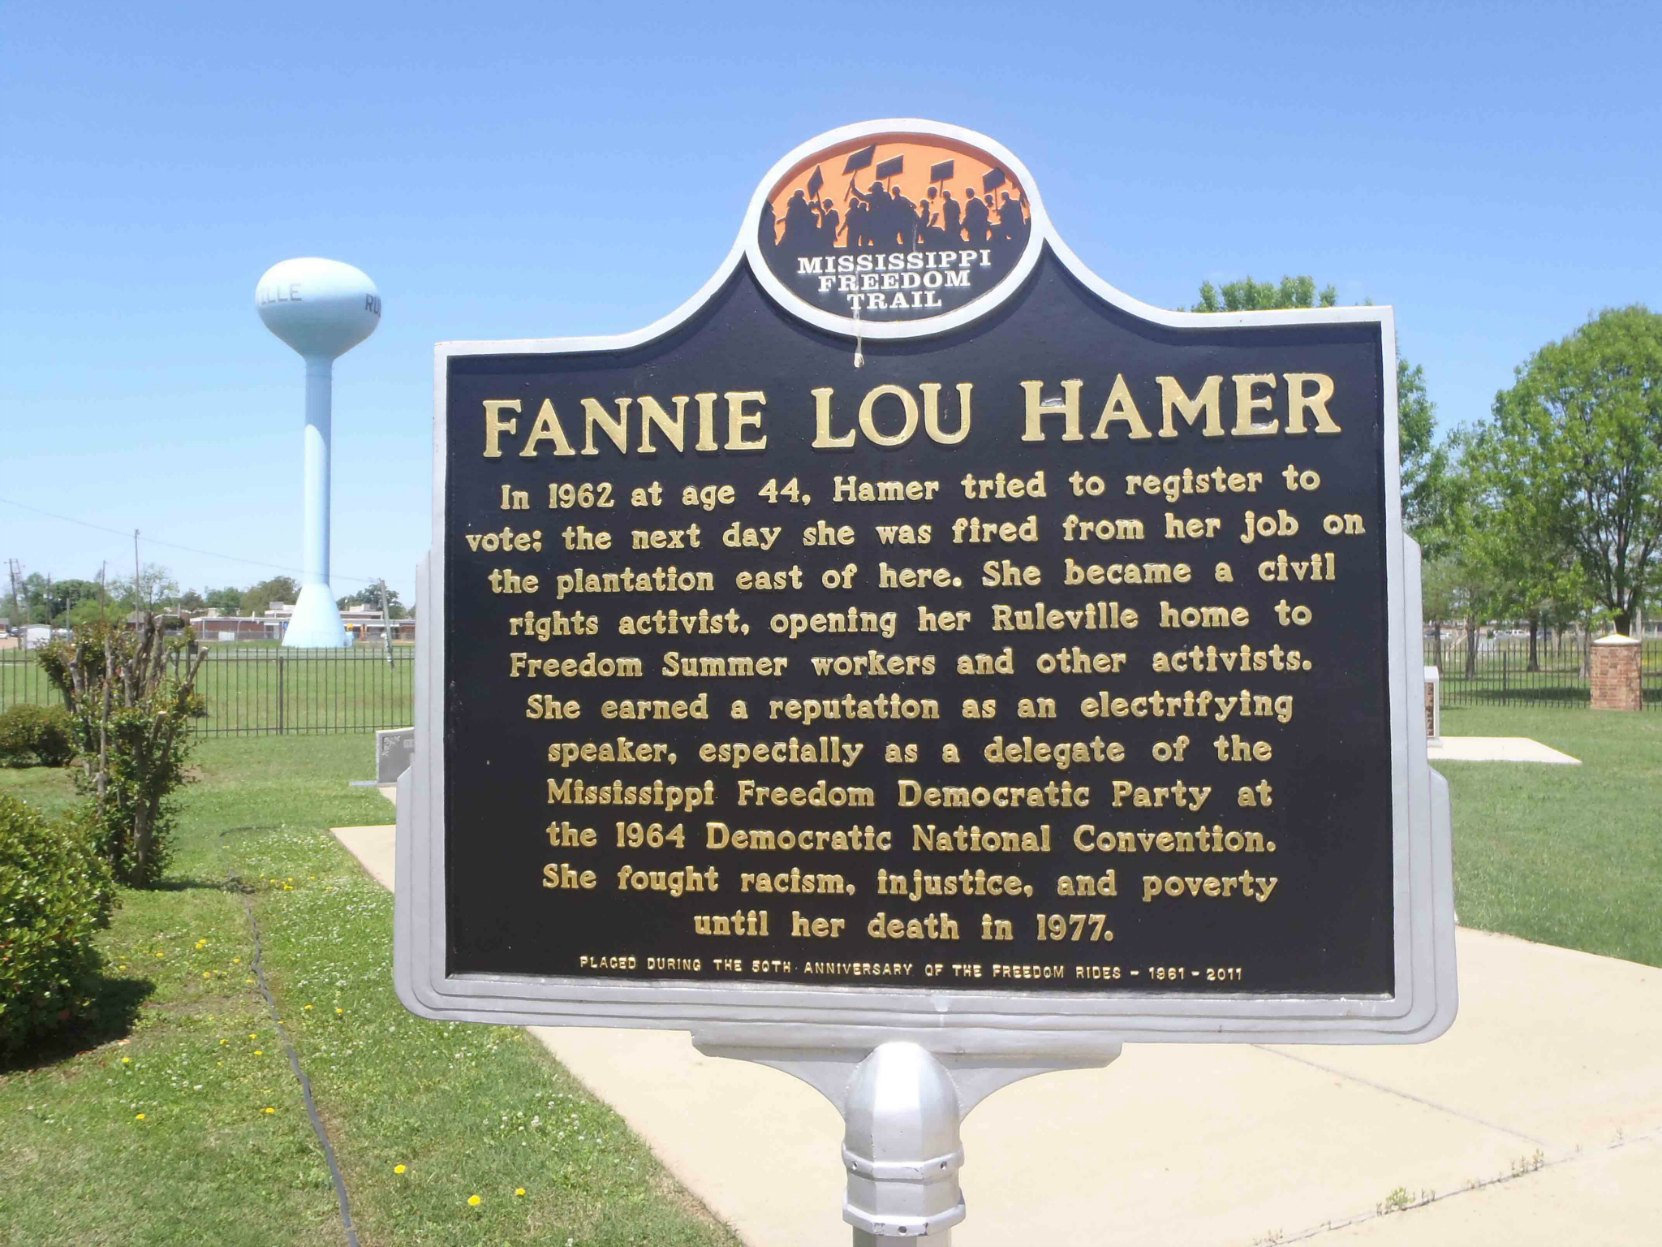 Mississippi Freedom Trail marker commemorating Fannie Lou Hamer, Ruleville, Mississippi.